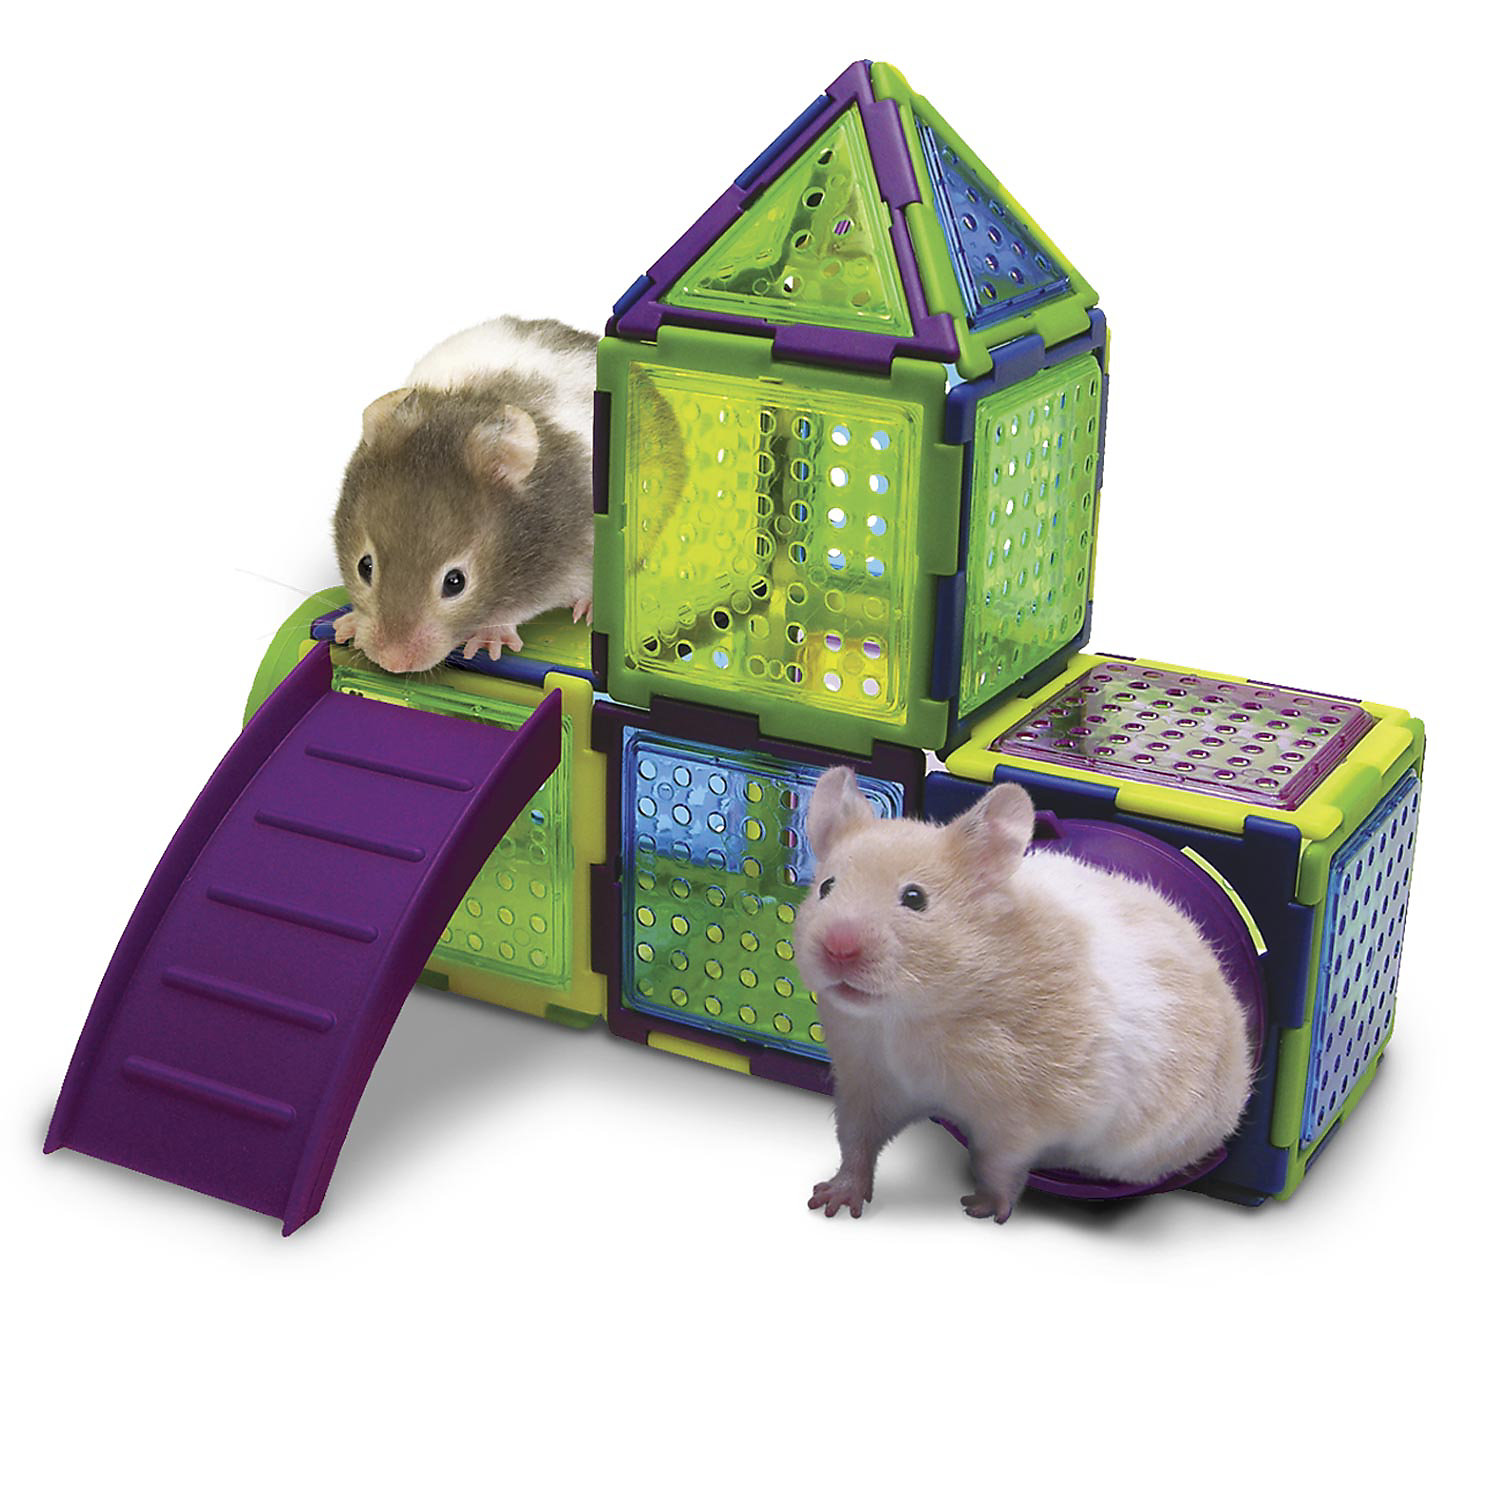 Kaytee Puzzle Playground Small Animal Jungle gym, 8.2 IN, Multi-Color